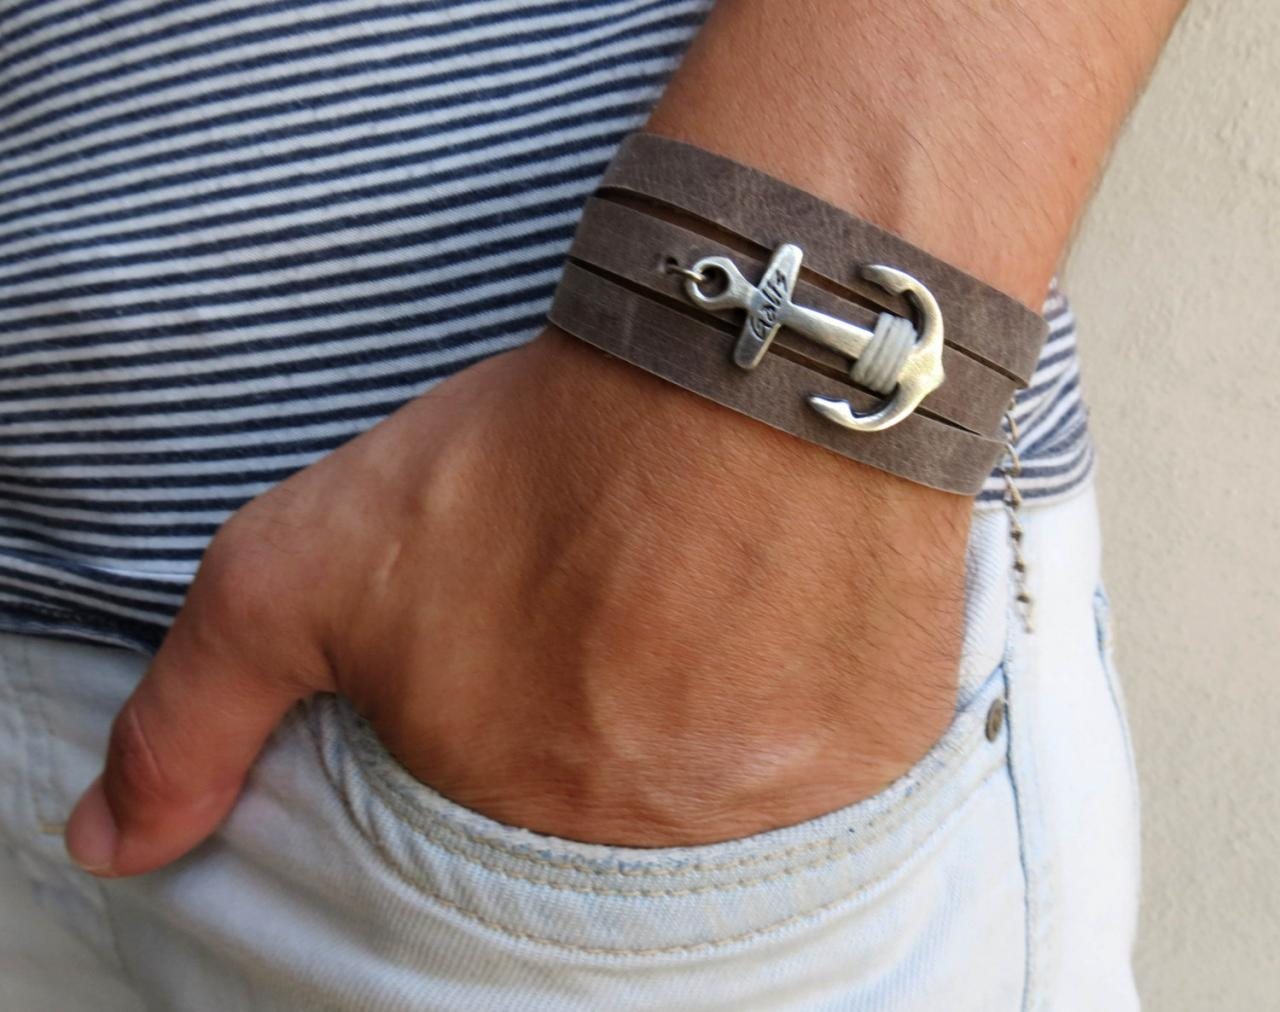 Men's Bracelet - Men's Anchor Bracelet - Men's Leather Bracelet - Men's Jewelry - Men's Gift - Boyfrienf Gift - Husband Gift - Gift for him - Gift For Dad - Present For Men